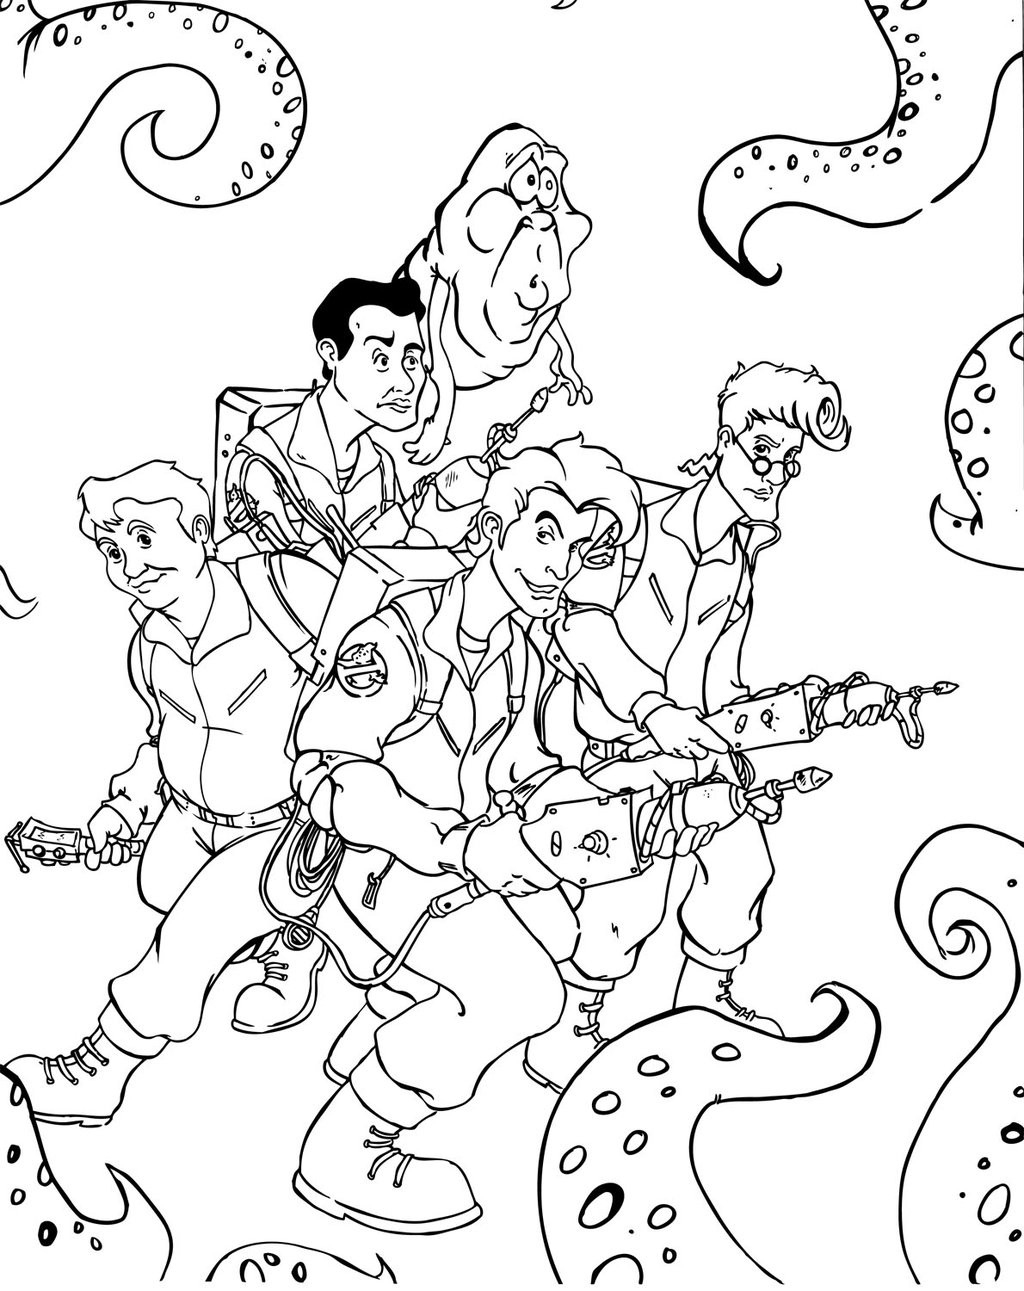 coloring ghostbusters printable ghostbusters coloring pages for kids cool2bkids ghostbusters coloring